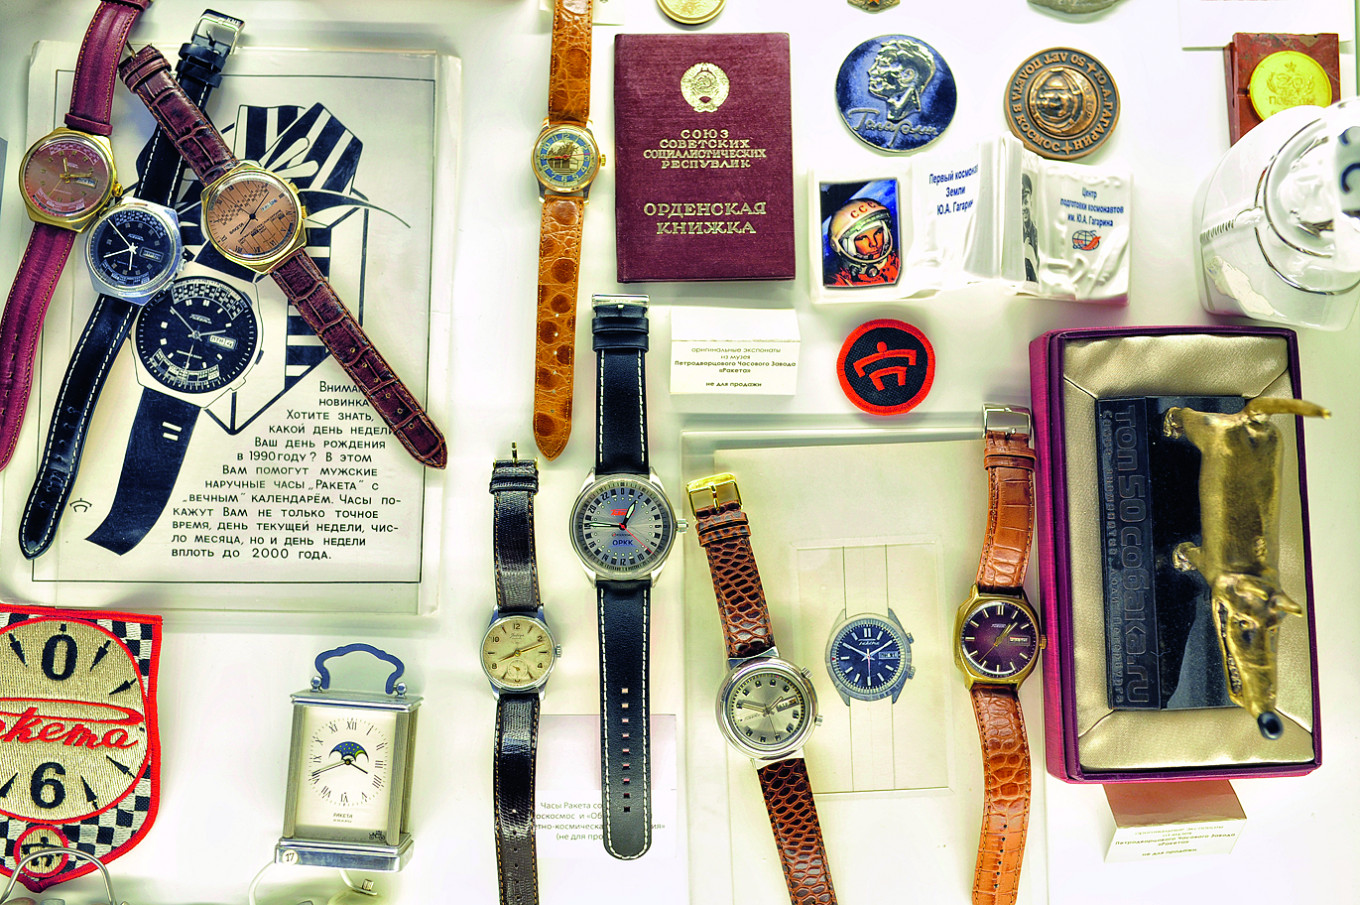 The Soviet watch industry was well regarded and many models remain desirable collectors' items.  Pascal Dumont / The Moscow Times